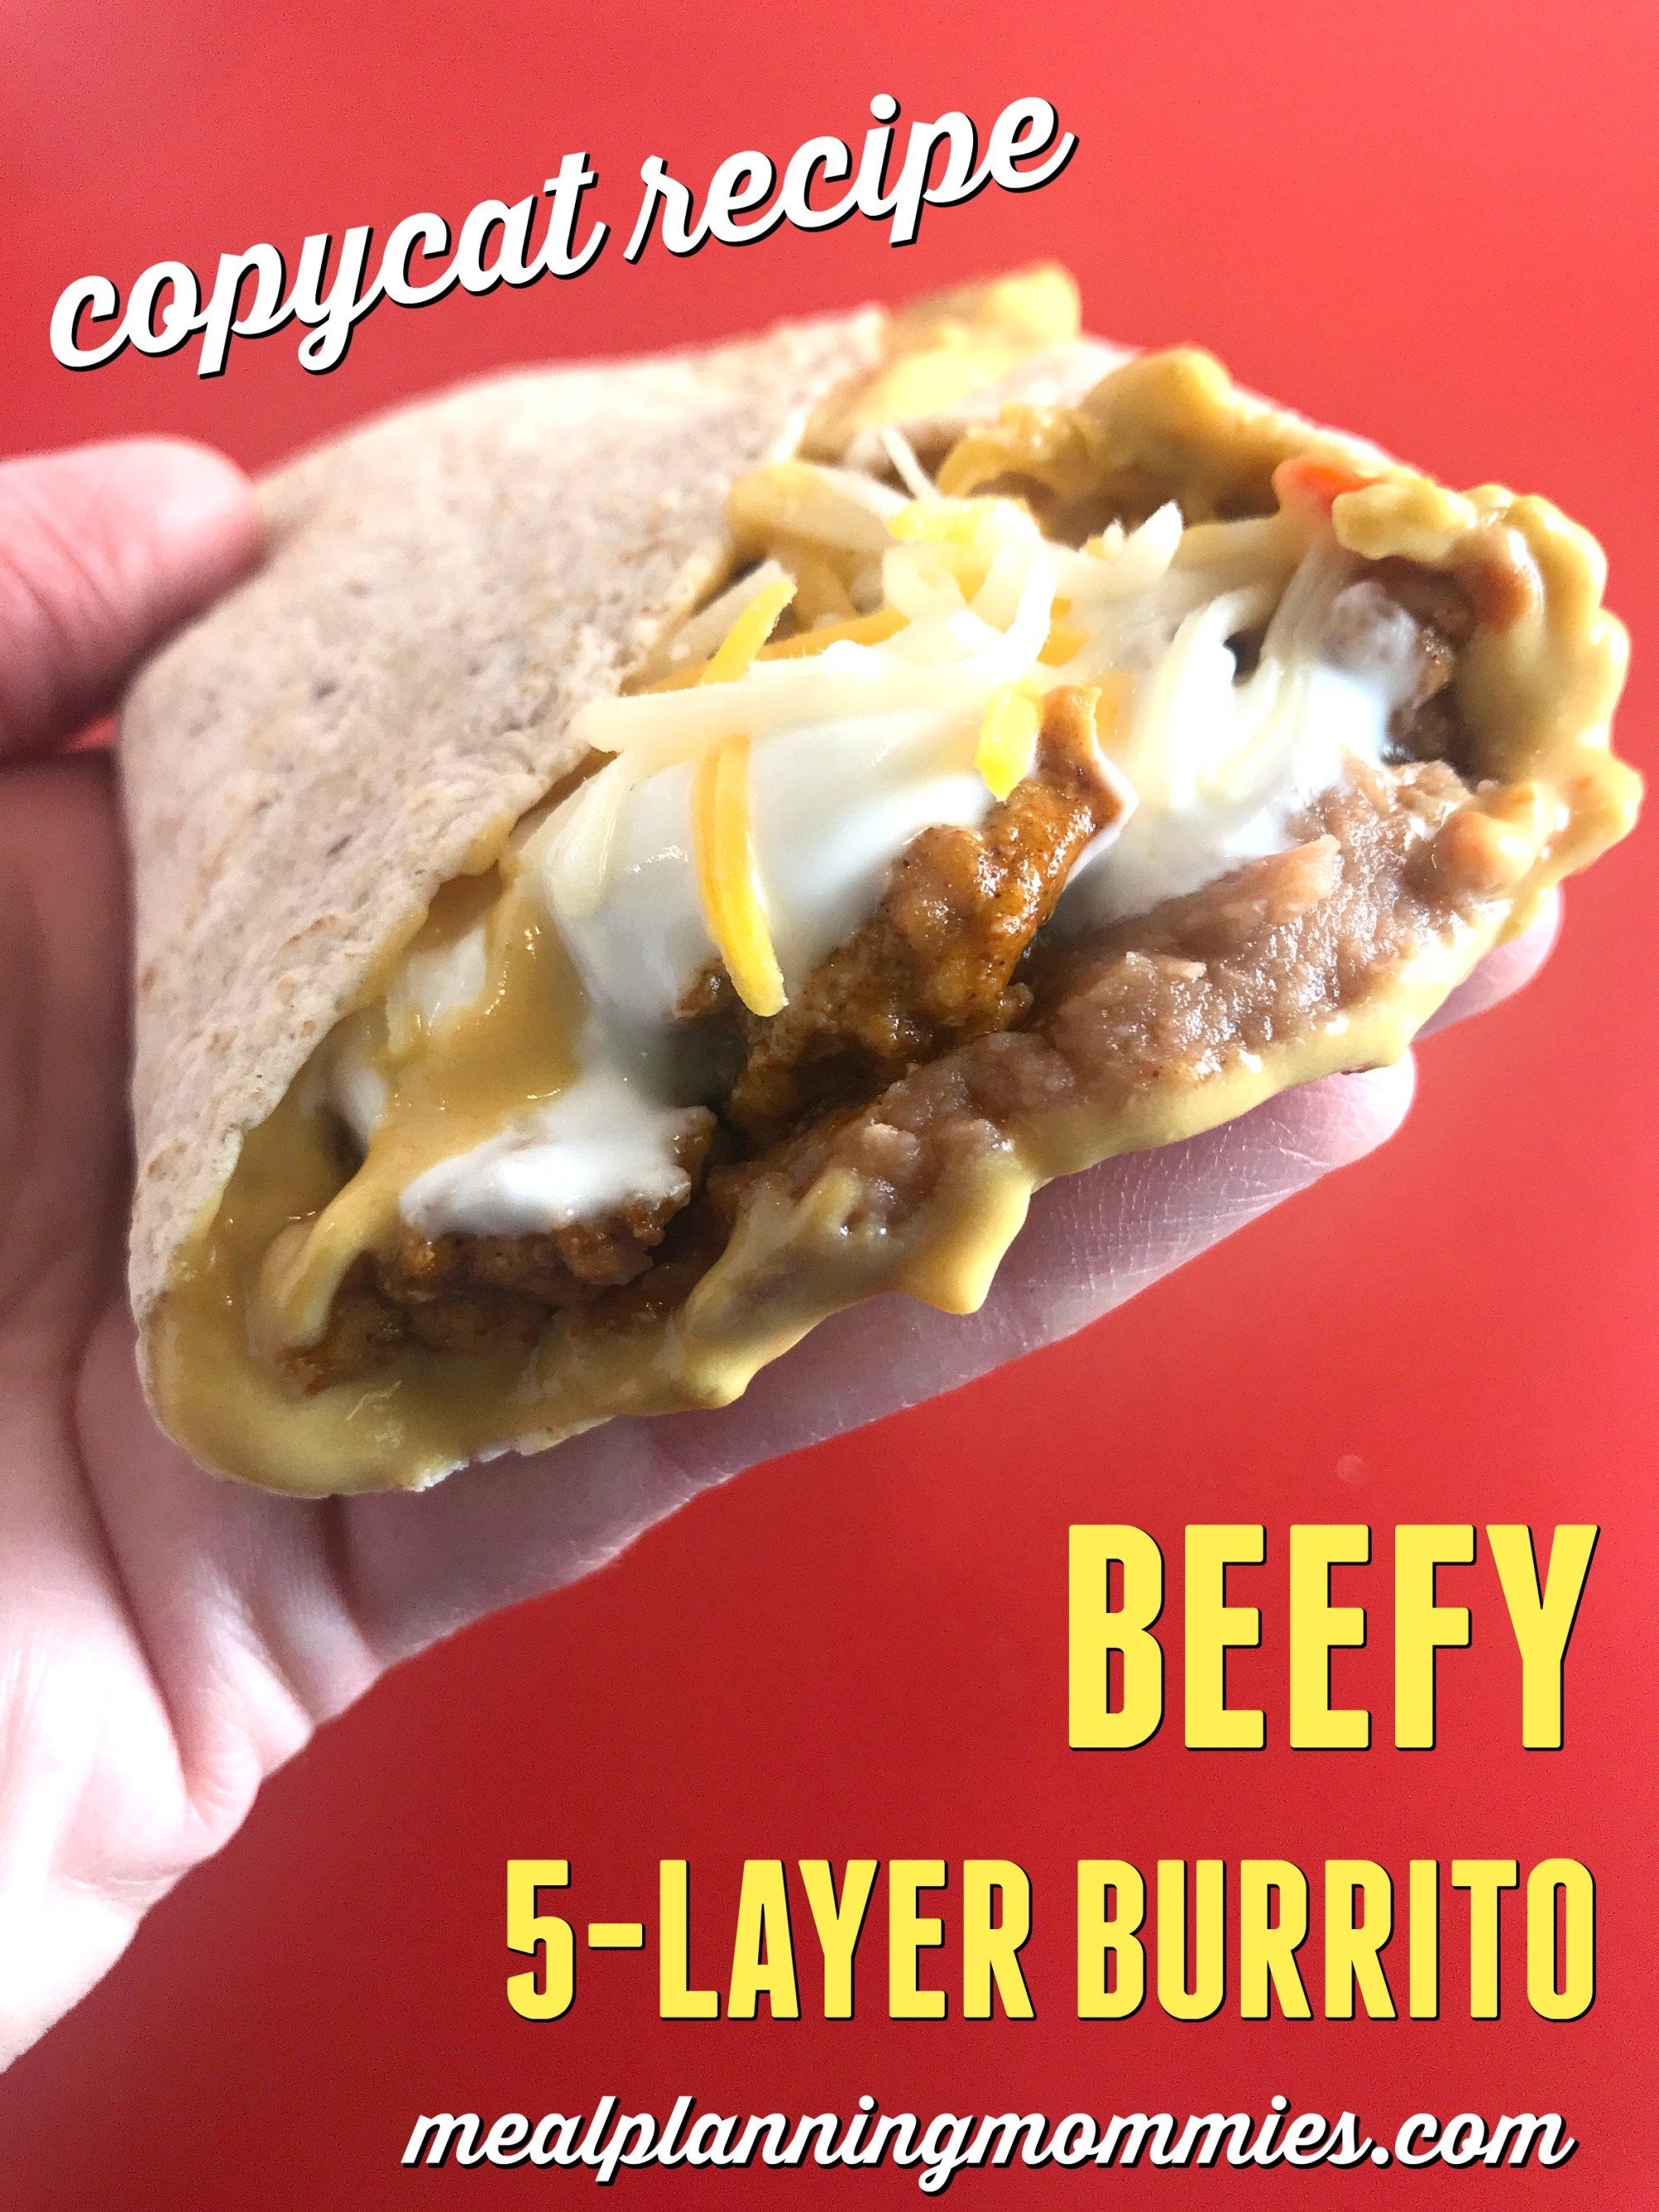 These Copycat Taco Bell Beefy 5 Layer Burritos Are Easy To Make And Are Just 6 Ww Freestyle Sp Per Burrito Yum Meal Planning Burritos Tacos And Burritos